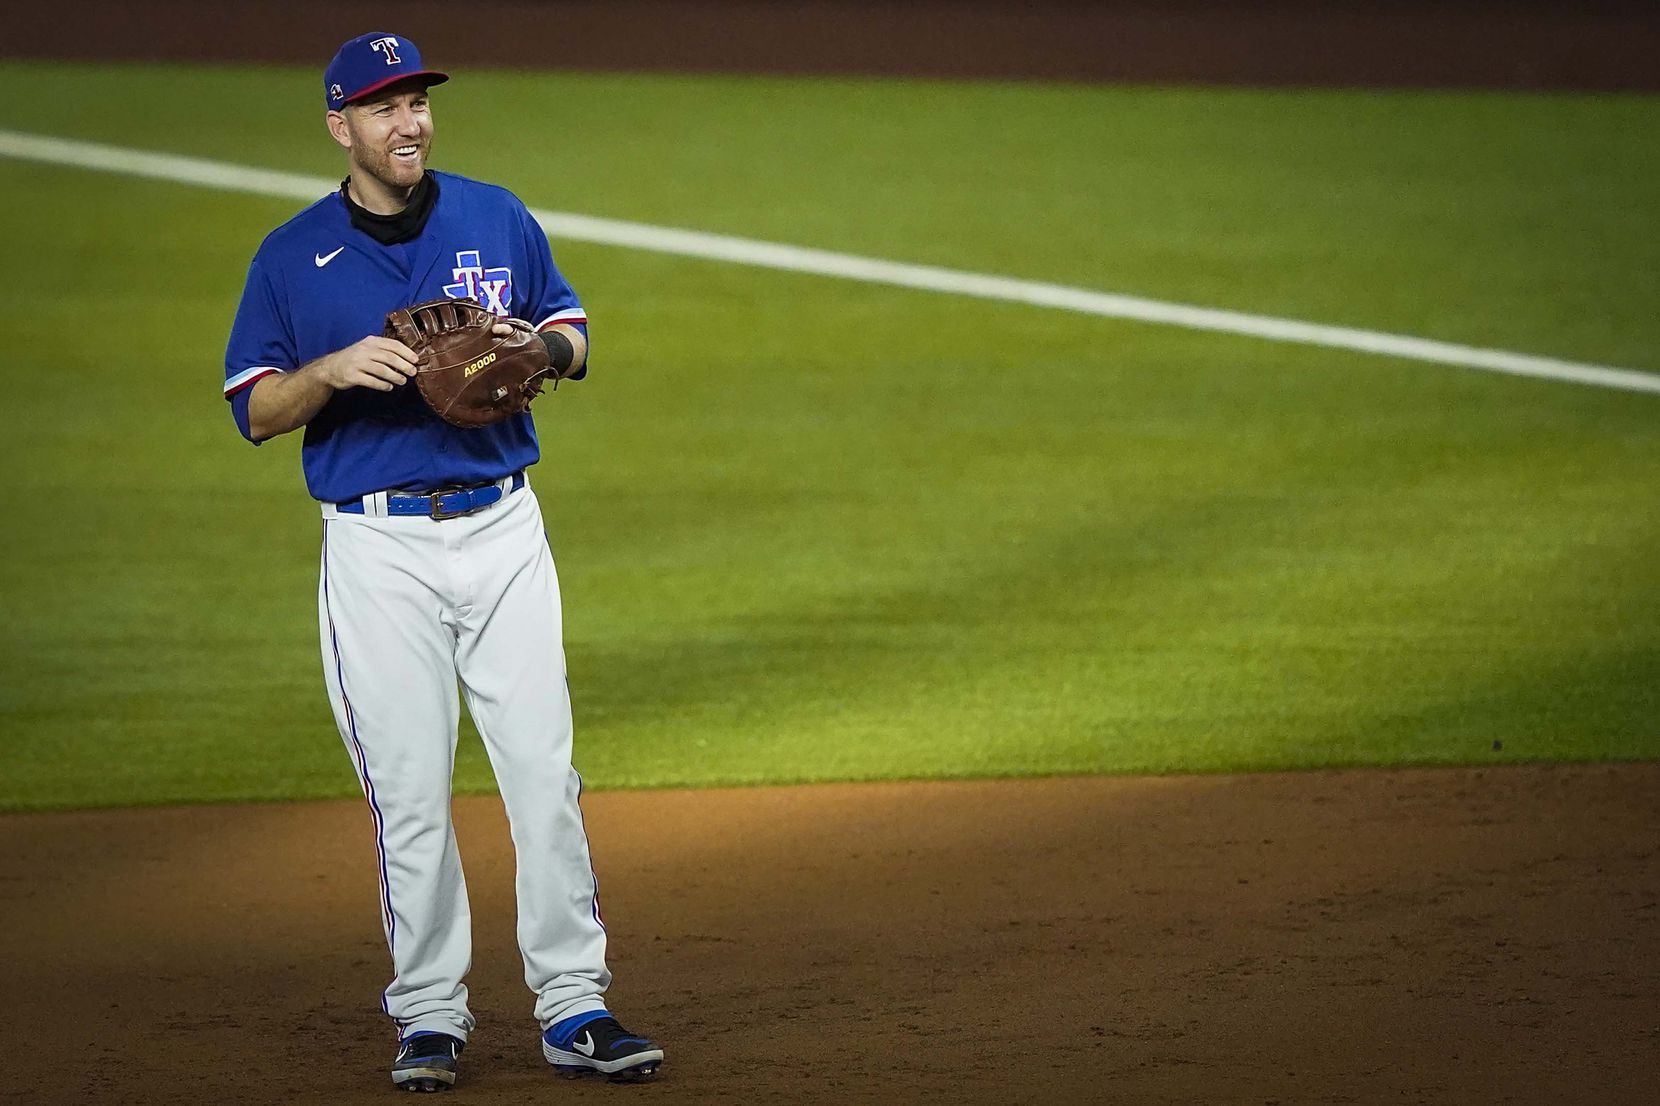 Texas Rangers infielder Todd Frazier plays first base during the third inning of an exhibition game against the Colorado Rockies at Globe Life Field on Wednesday, July 22, 2020.